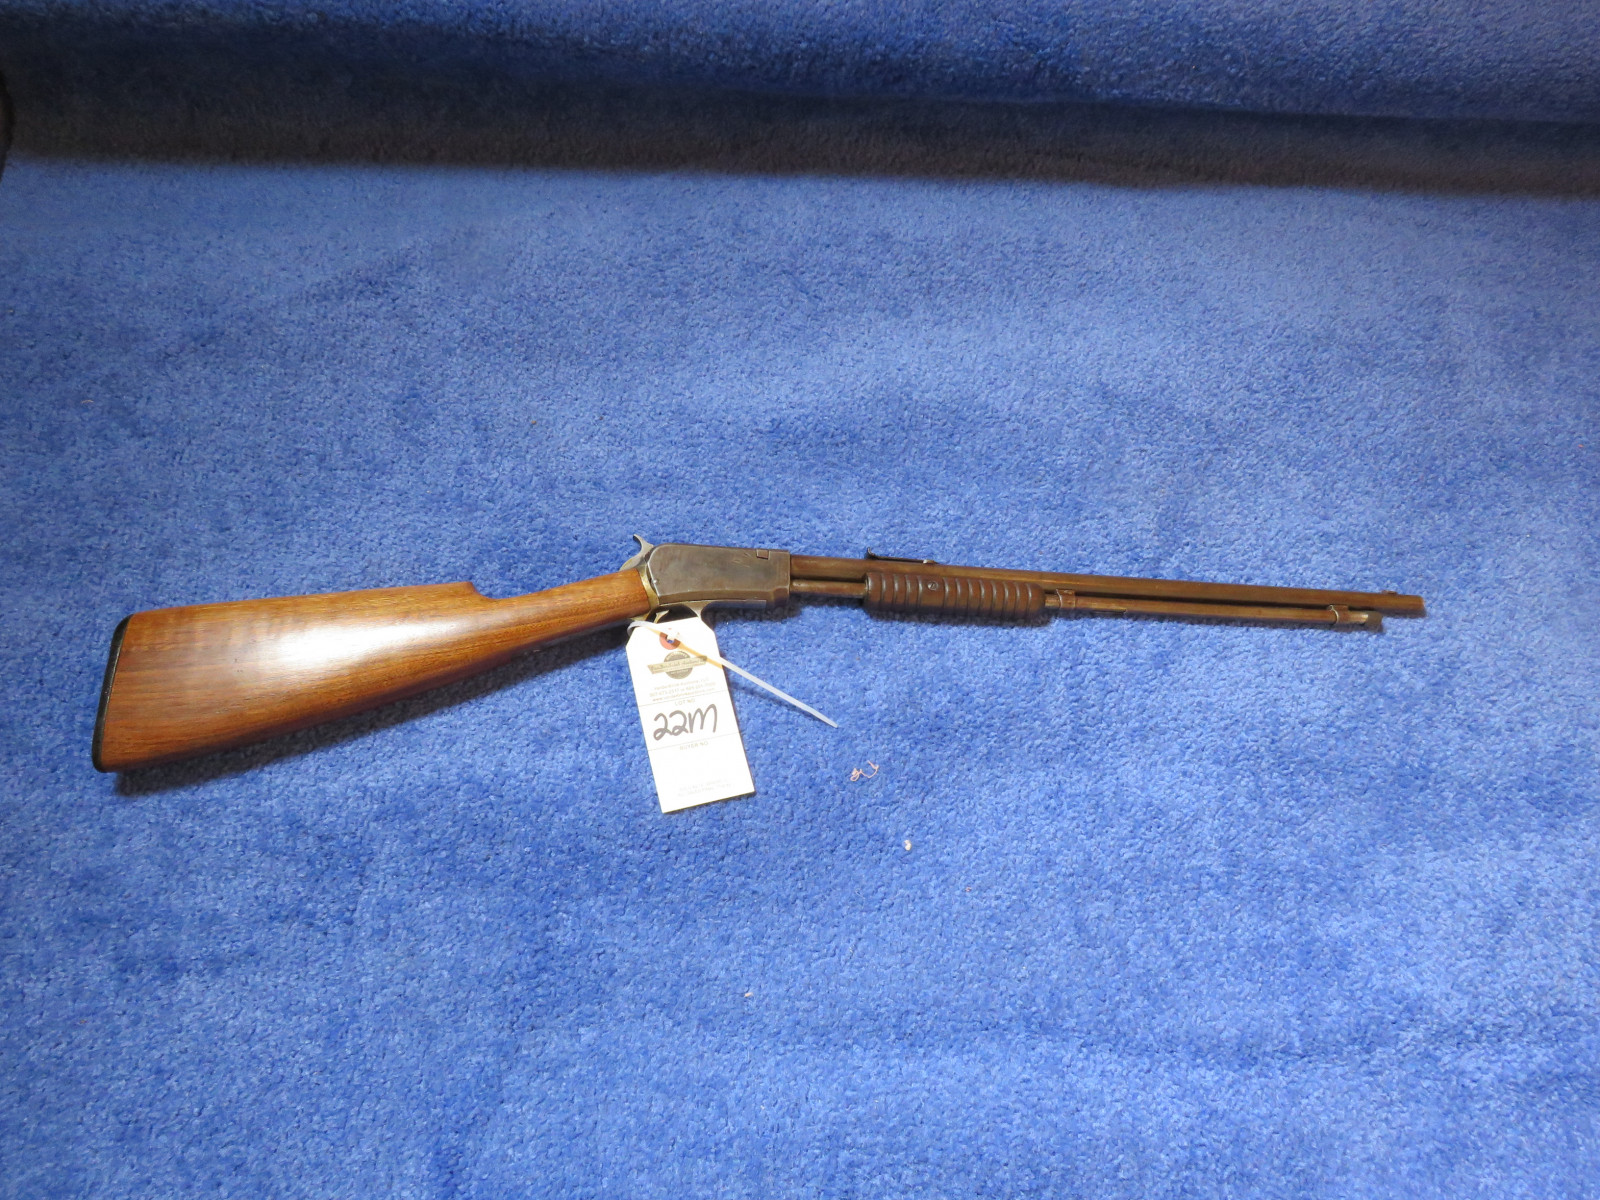 Winchester Repeating Arms Model 1906 Rifle - Image 1